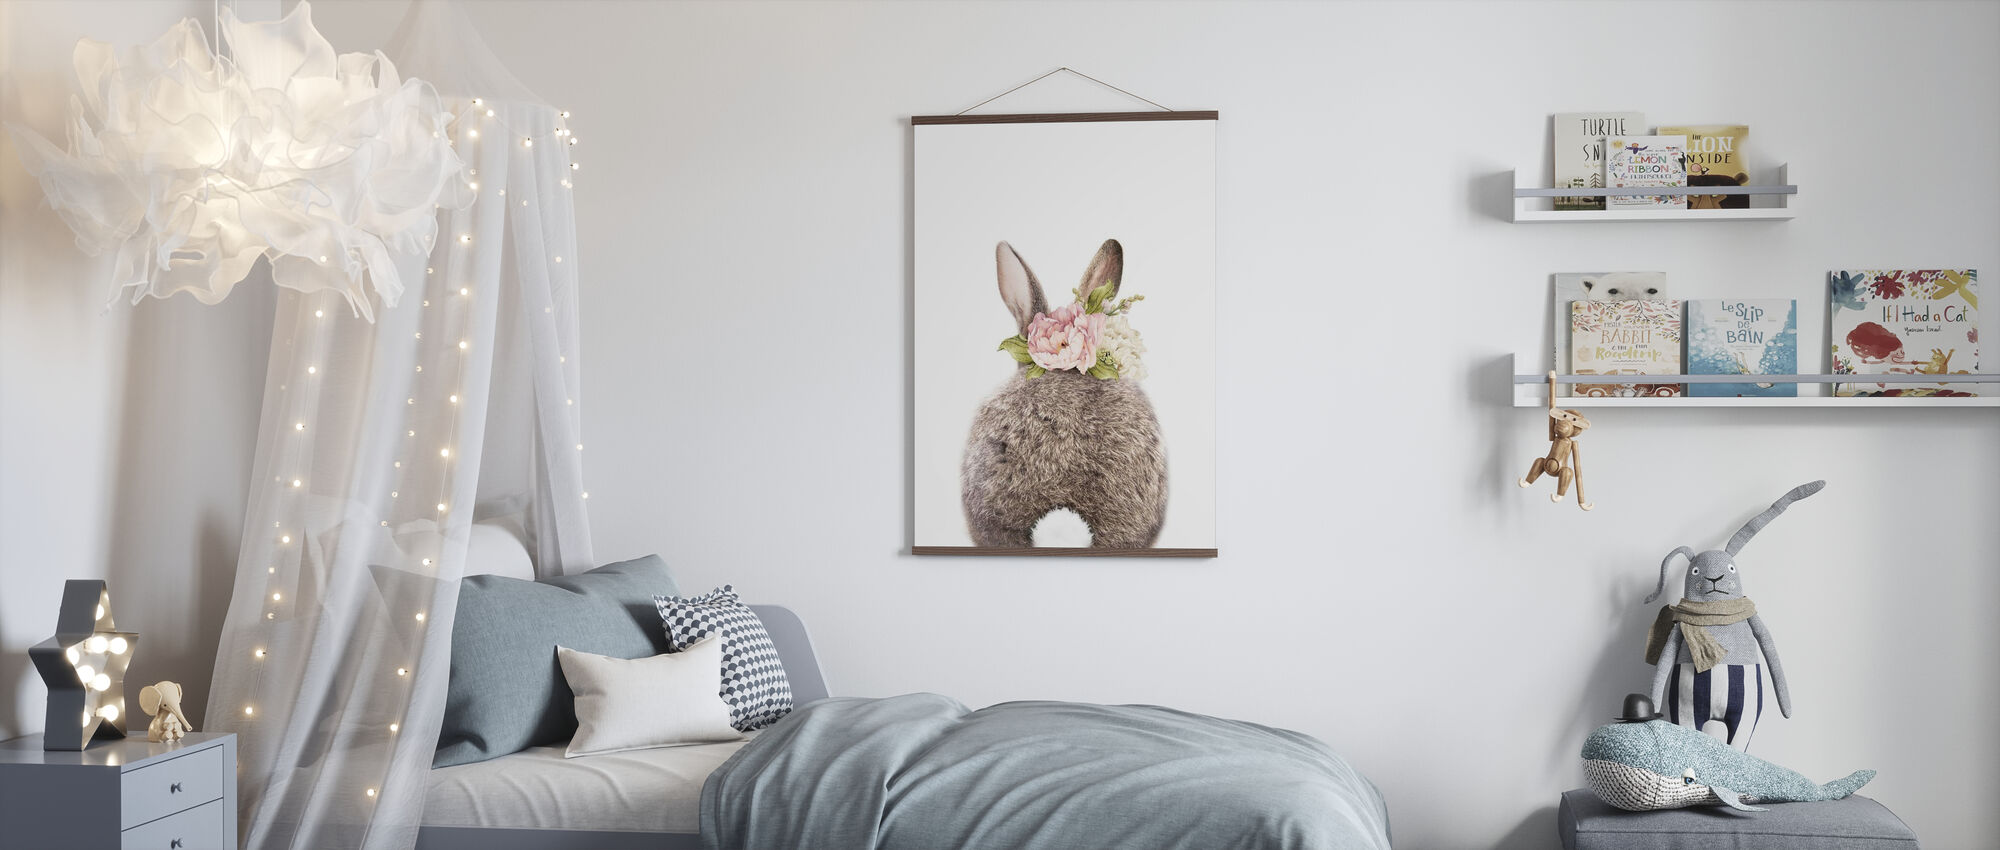 Floral Bunny - Tail - Poster - Kids Room